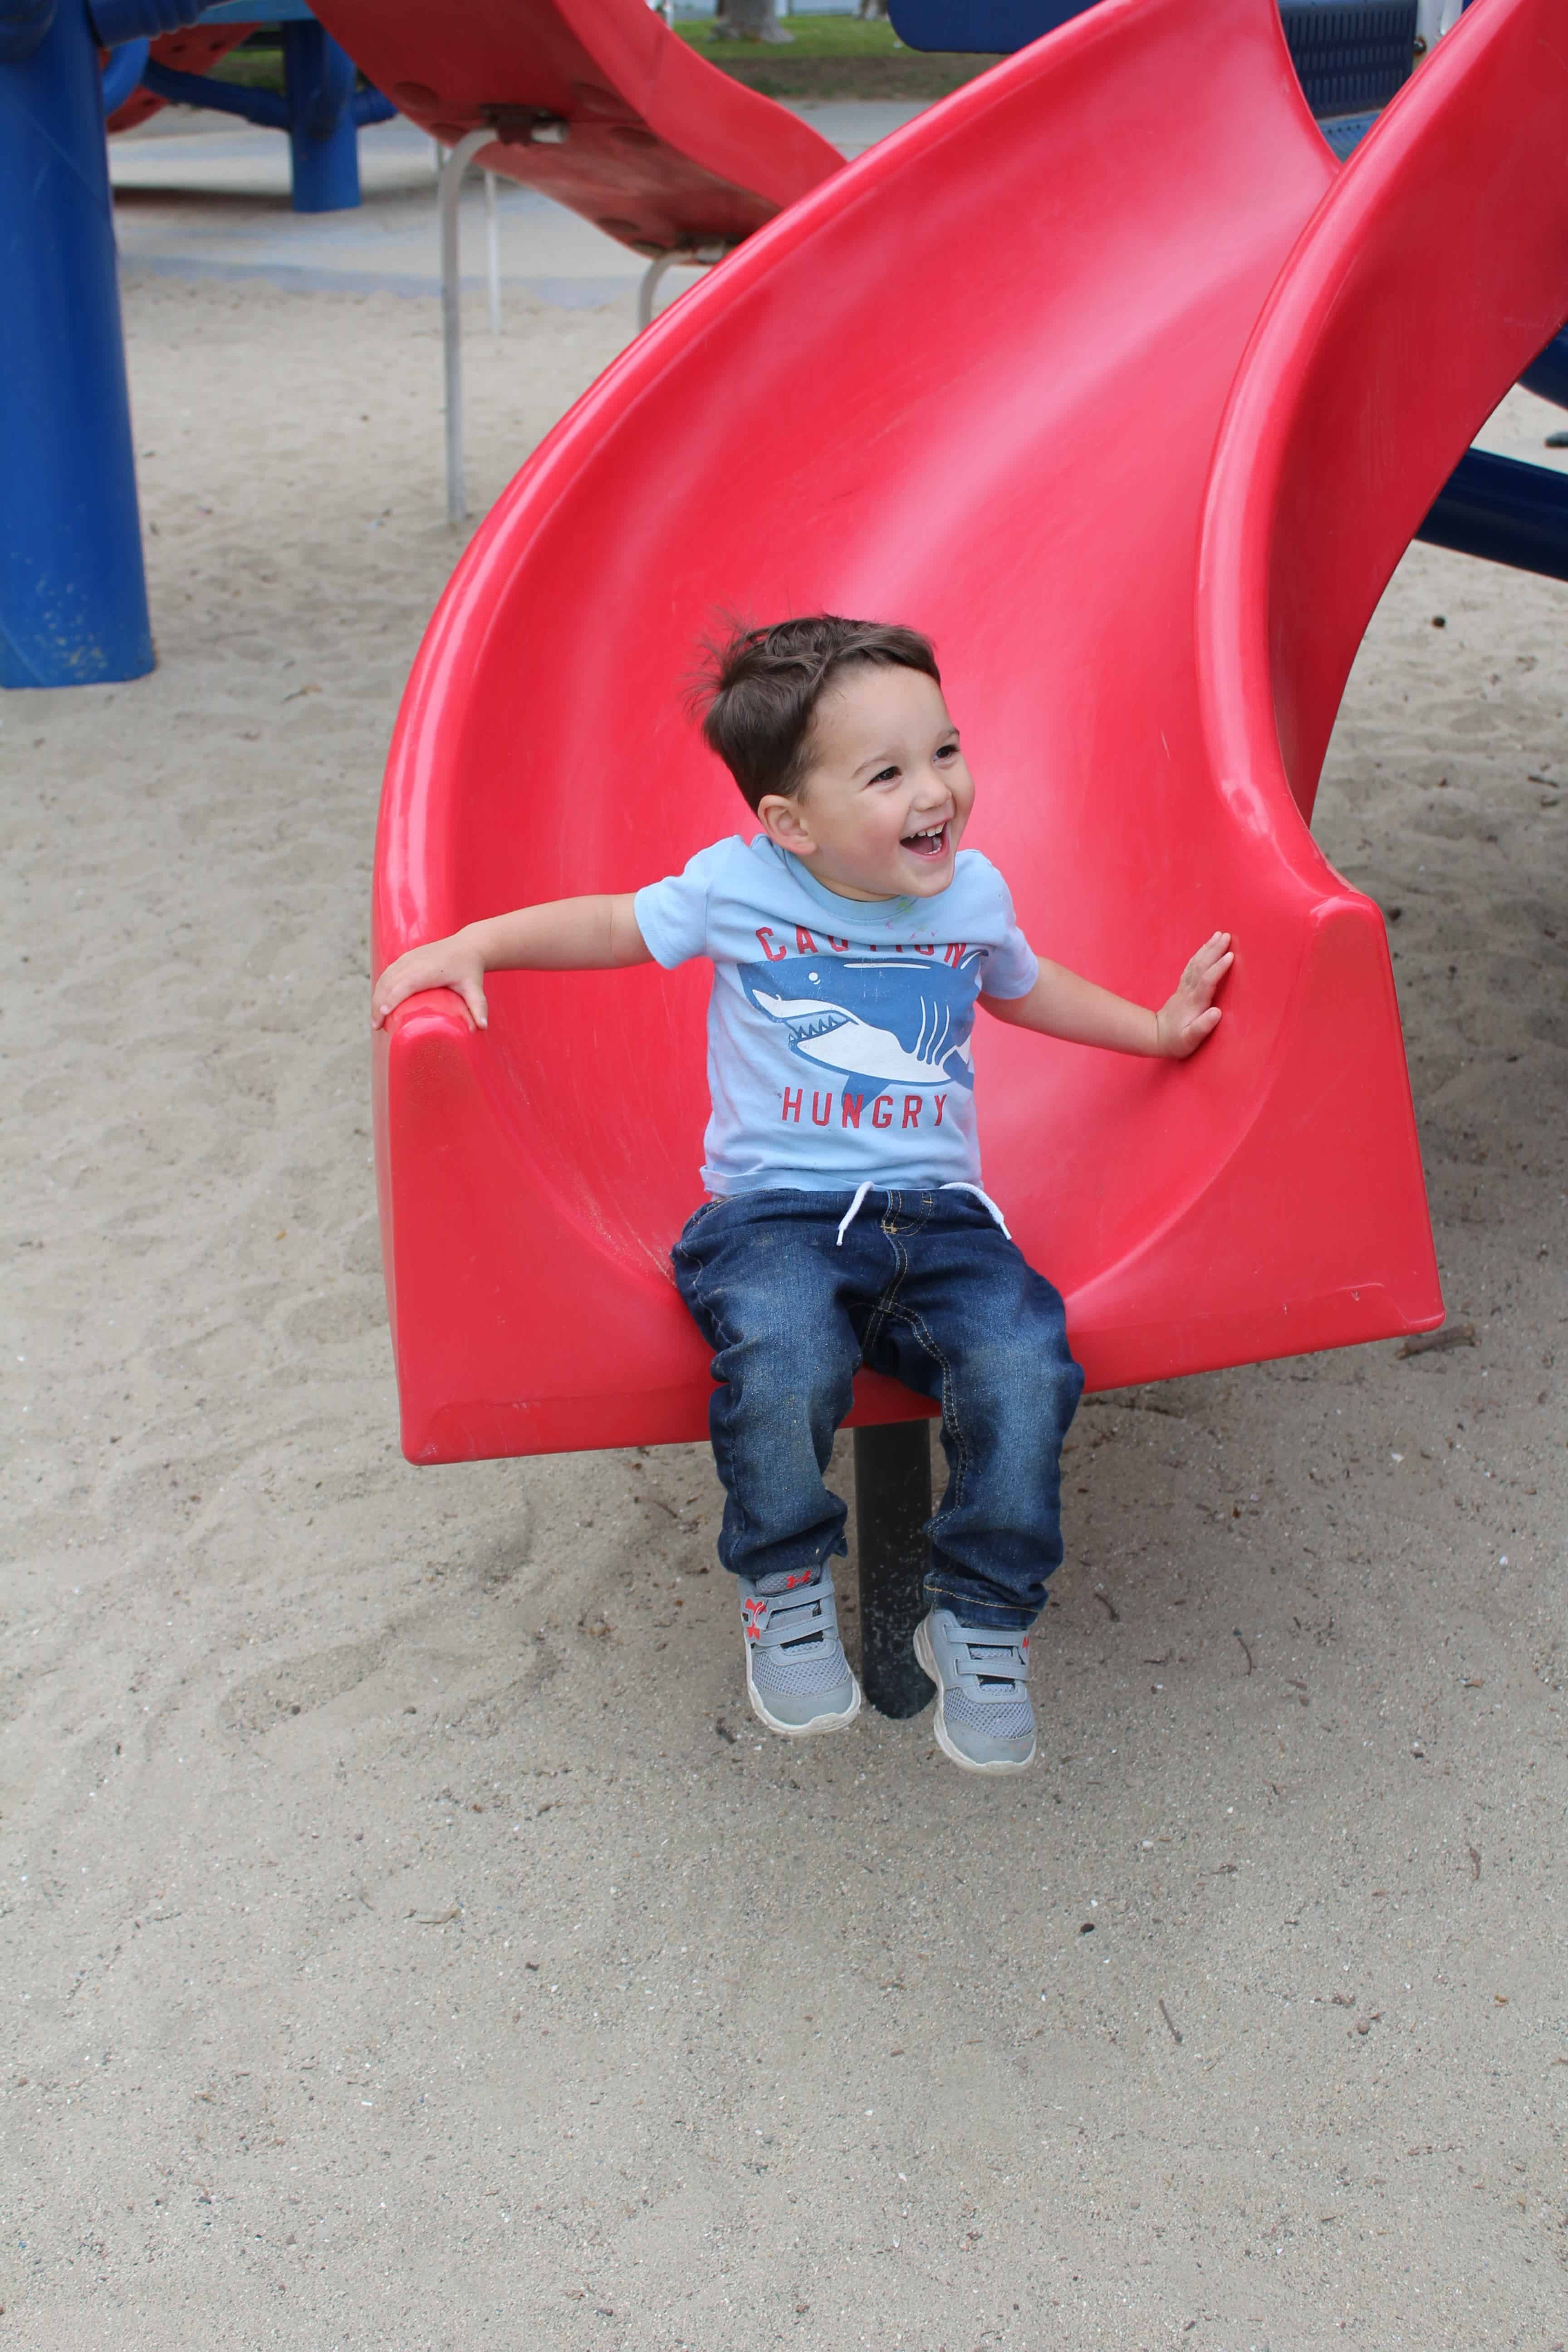 A preschool boy sliding down a red slide with a big smile on his face